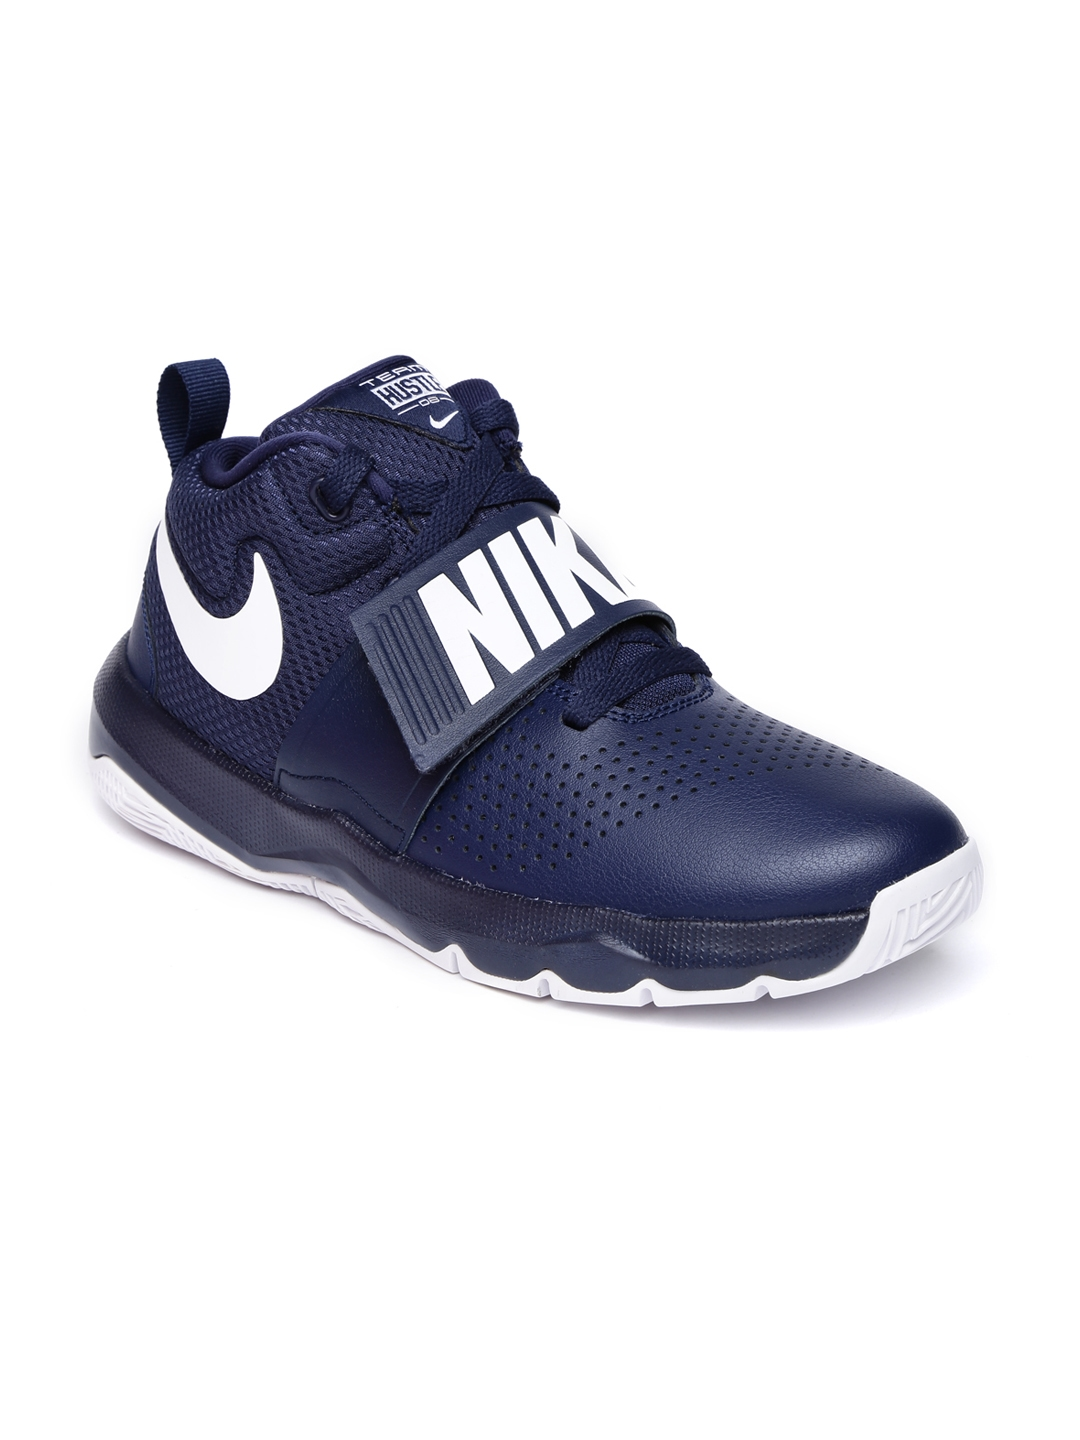 separation shoes 0b832 870f3 Nike Boys Navy Blue TEAM HUSTLE D 8 Leather Mid-Top Basketball Shoes